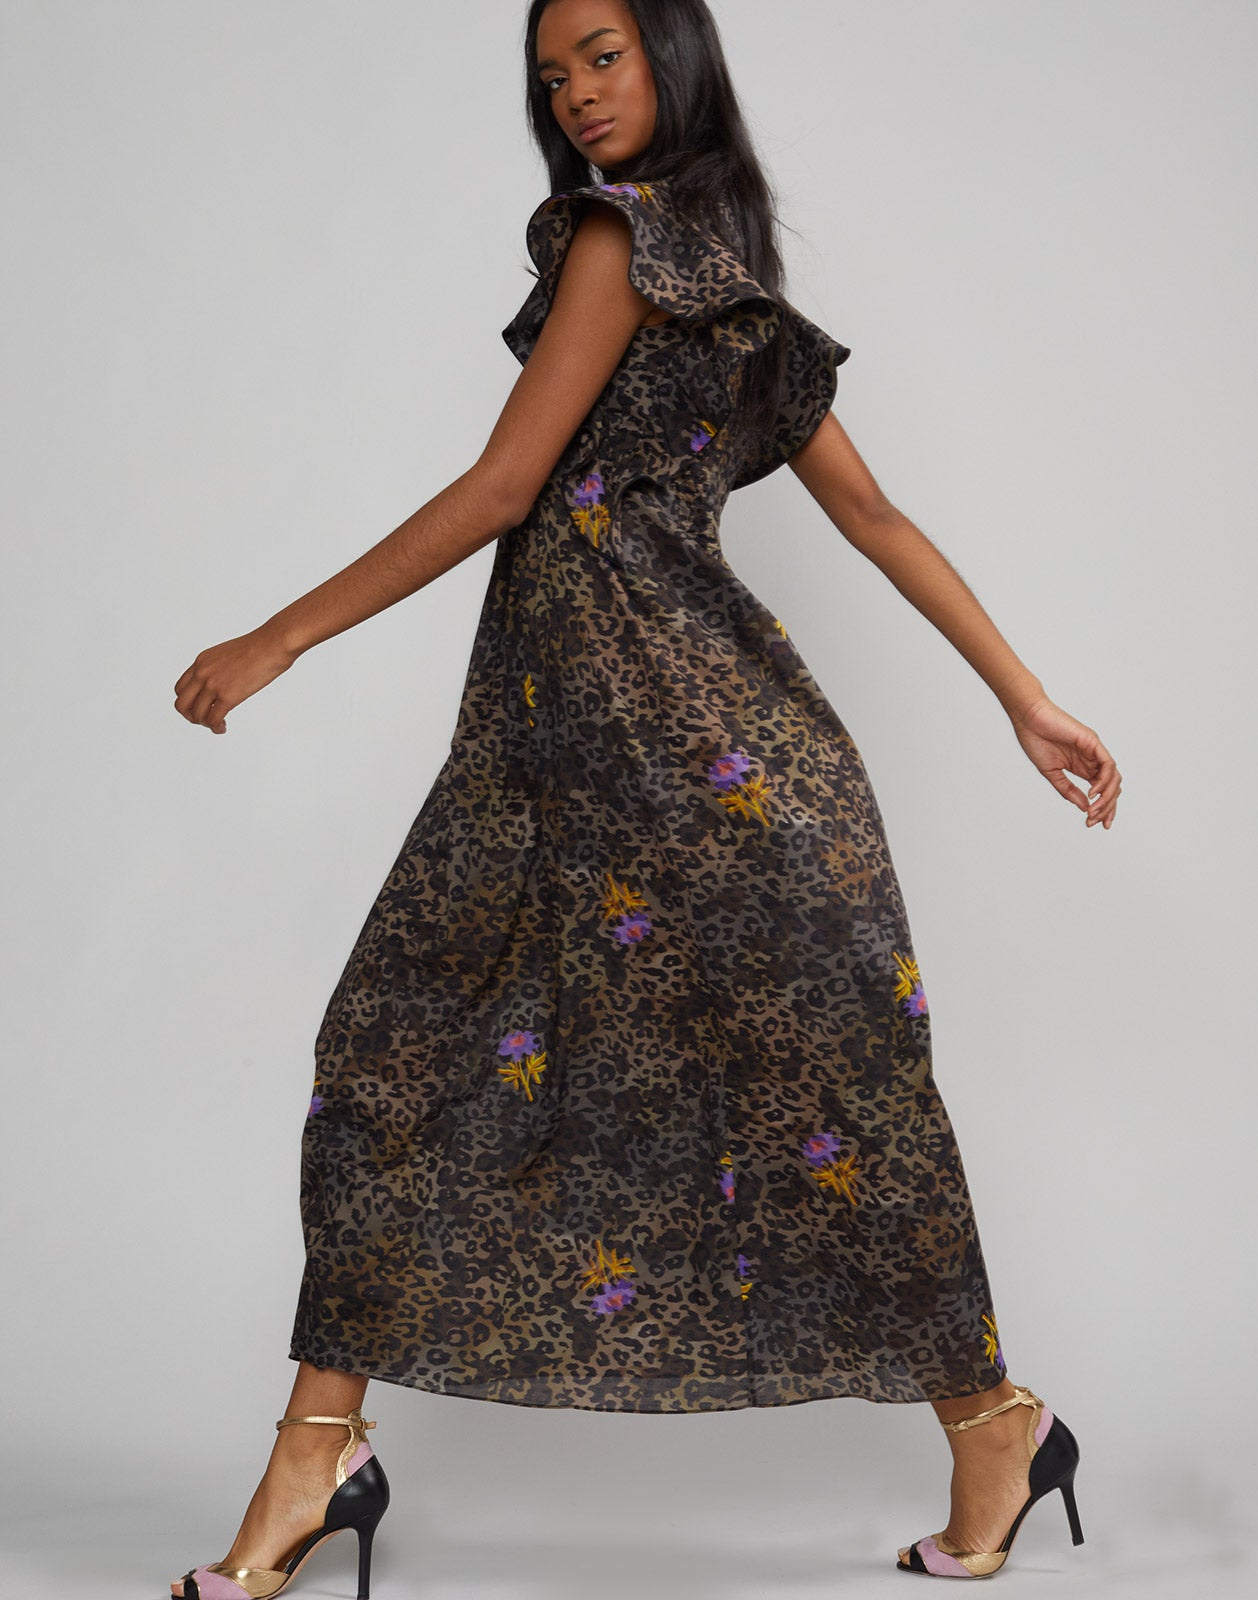 Side full view of model walking wearing Nairobi Leopard Flower Kaftan.